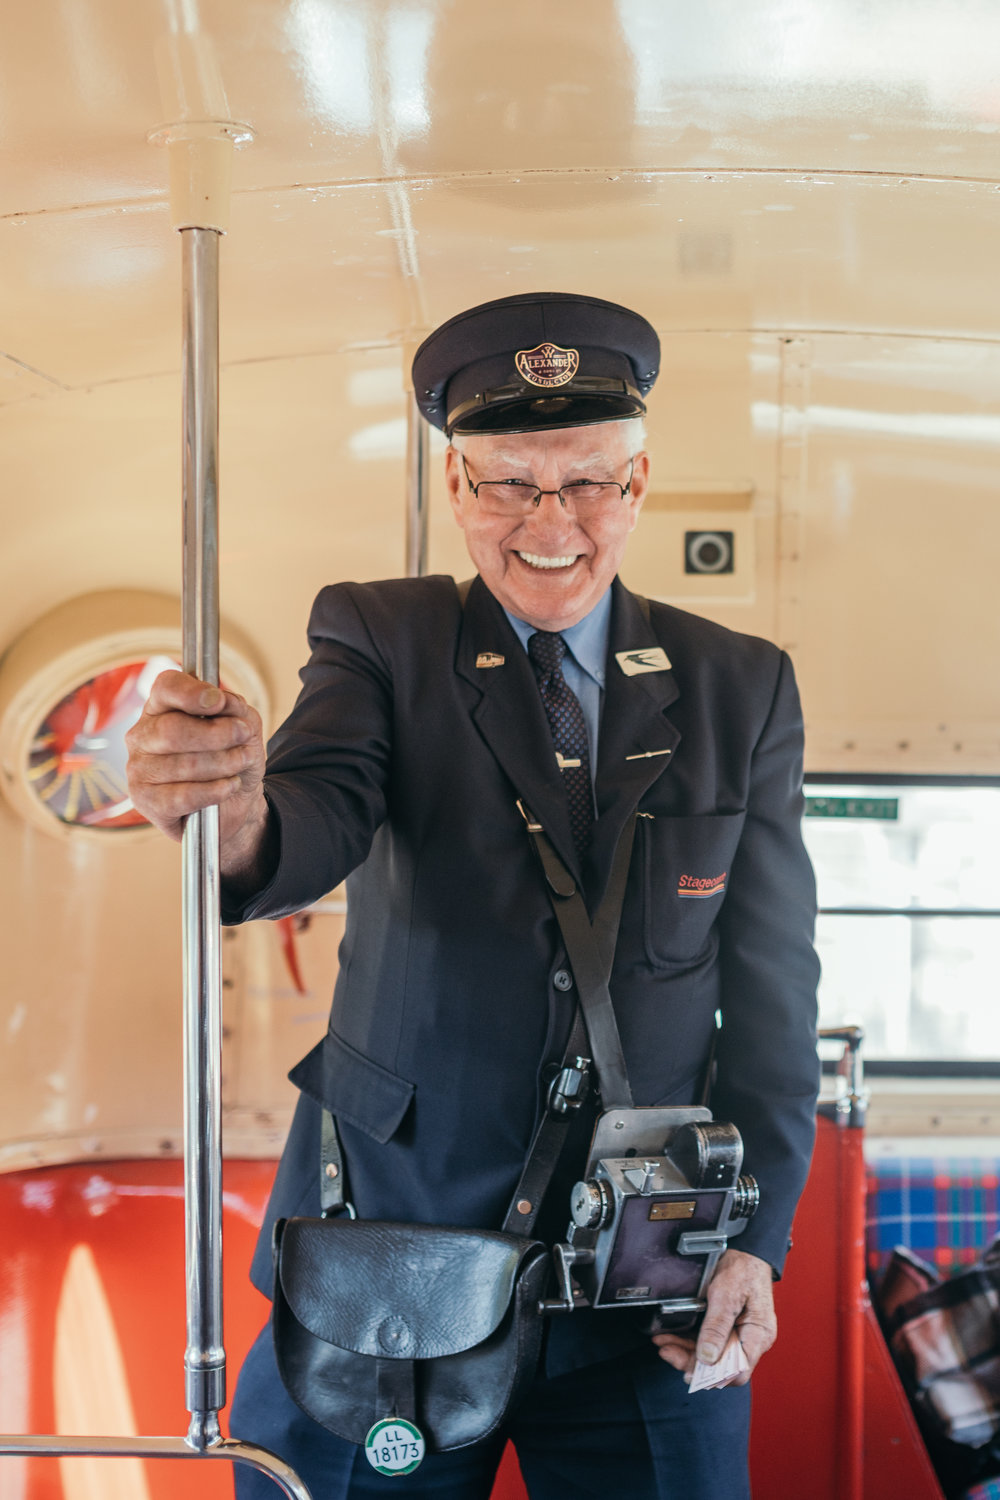 Conductor on a vintage double decker bus in Edinburgh, Scotland at Carlowie Castle Wedding